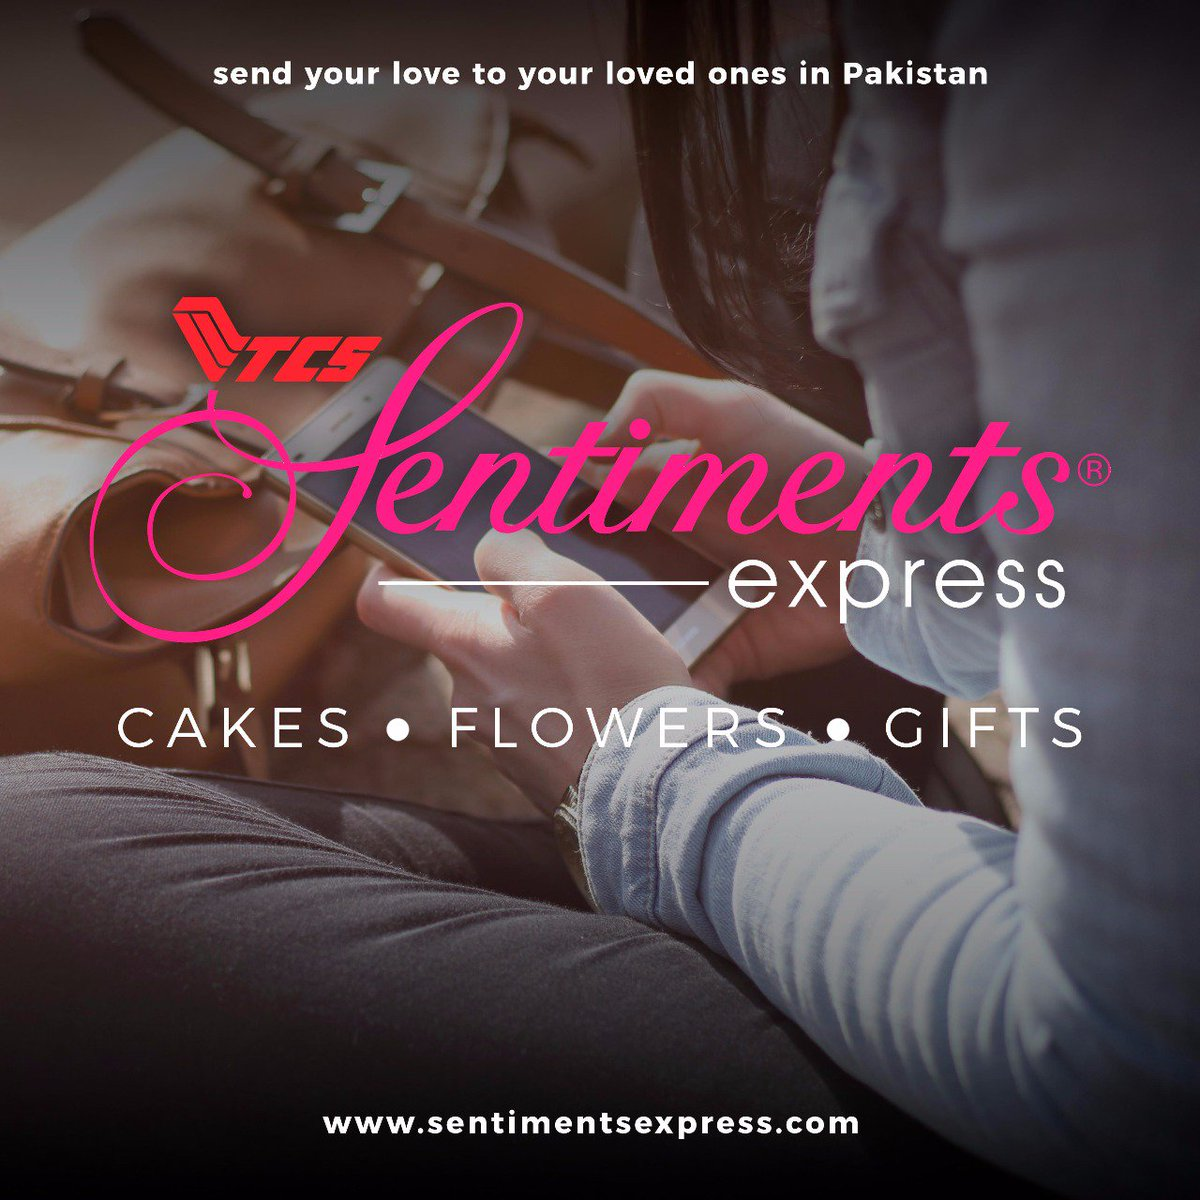 Send Cakes, Flowers, Mithai, Chocolates & Gifts for any Occasion from any where in the world to Pakistan👉 {https://int.sentimentsexpress.com?rfsn=1097327.3de87int.sentimentsexpress.com/?rfsn=1097327int.sentimentsexpress.com/?rfsn=1097327.… . …} ||#cakes #flowers #mithai #chocolates #gifts #occasion #world #pakistan #london #england #ireland #wales #scotland